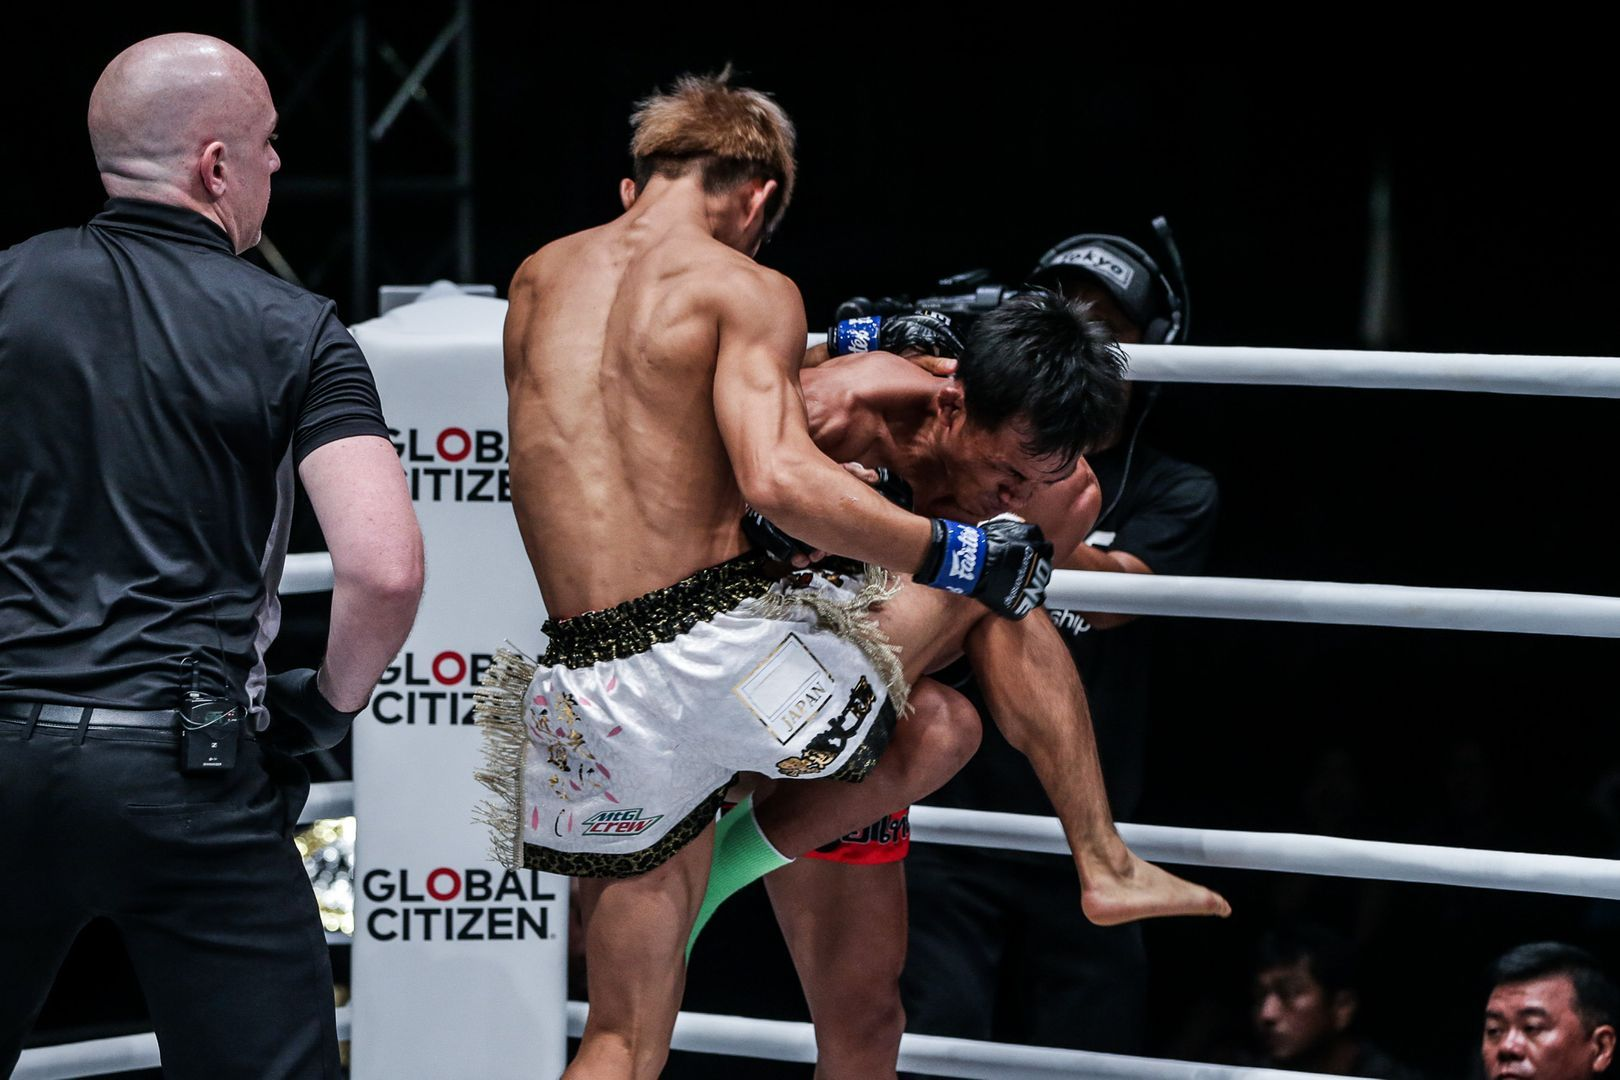 Japan's Momotaro hits a crunching knee on Singtongnoi in the clinch